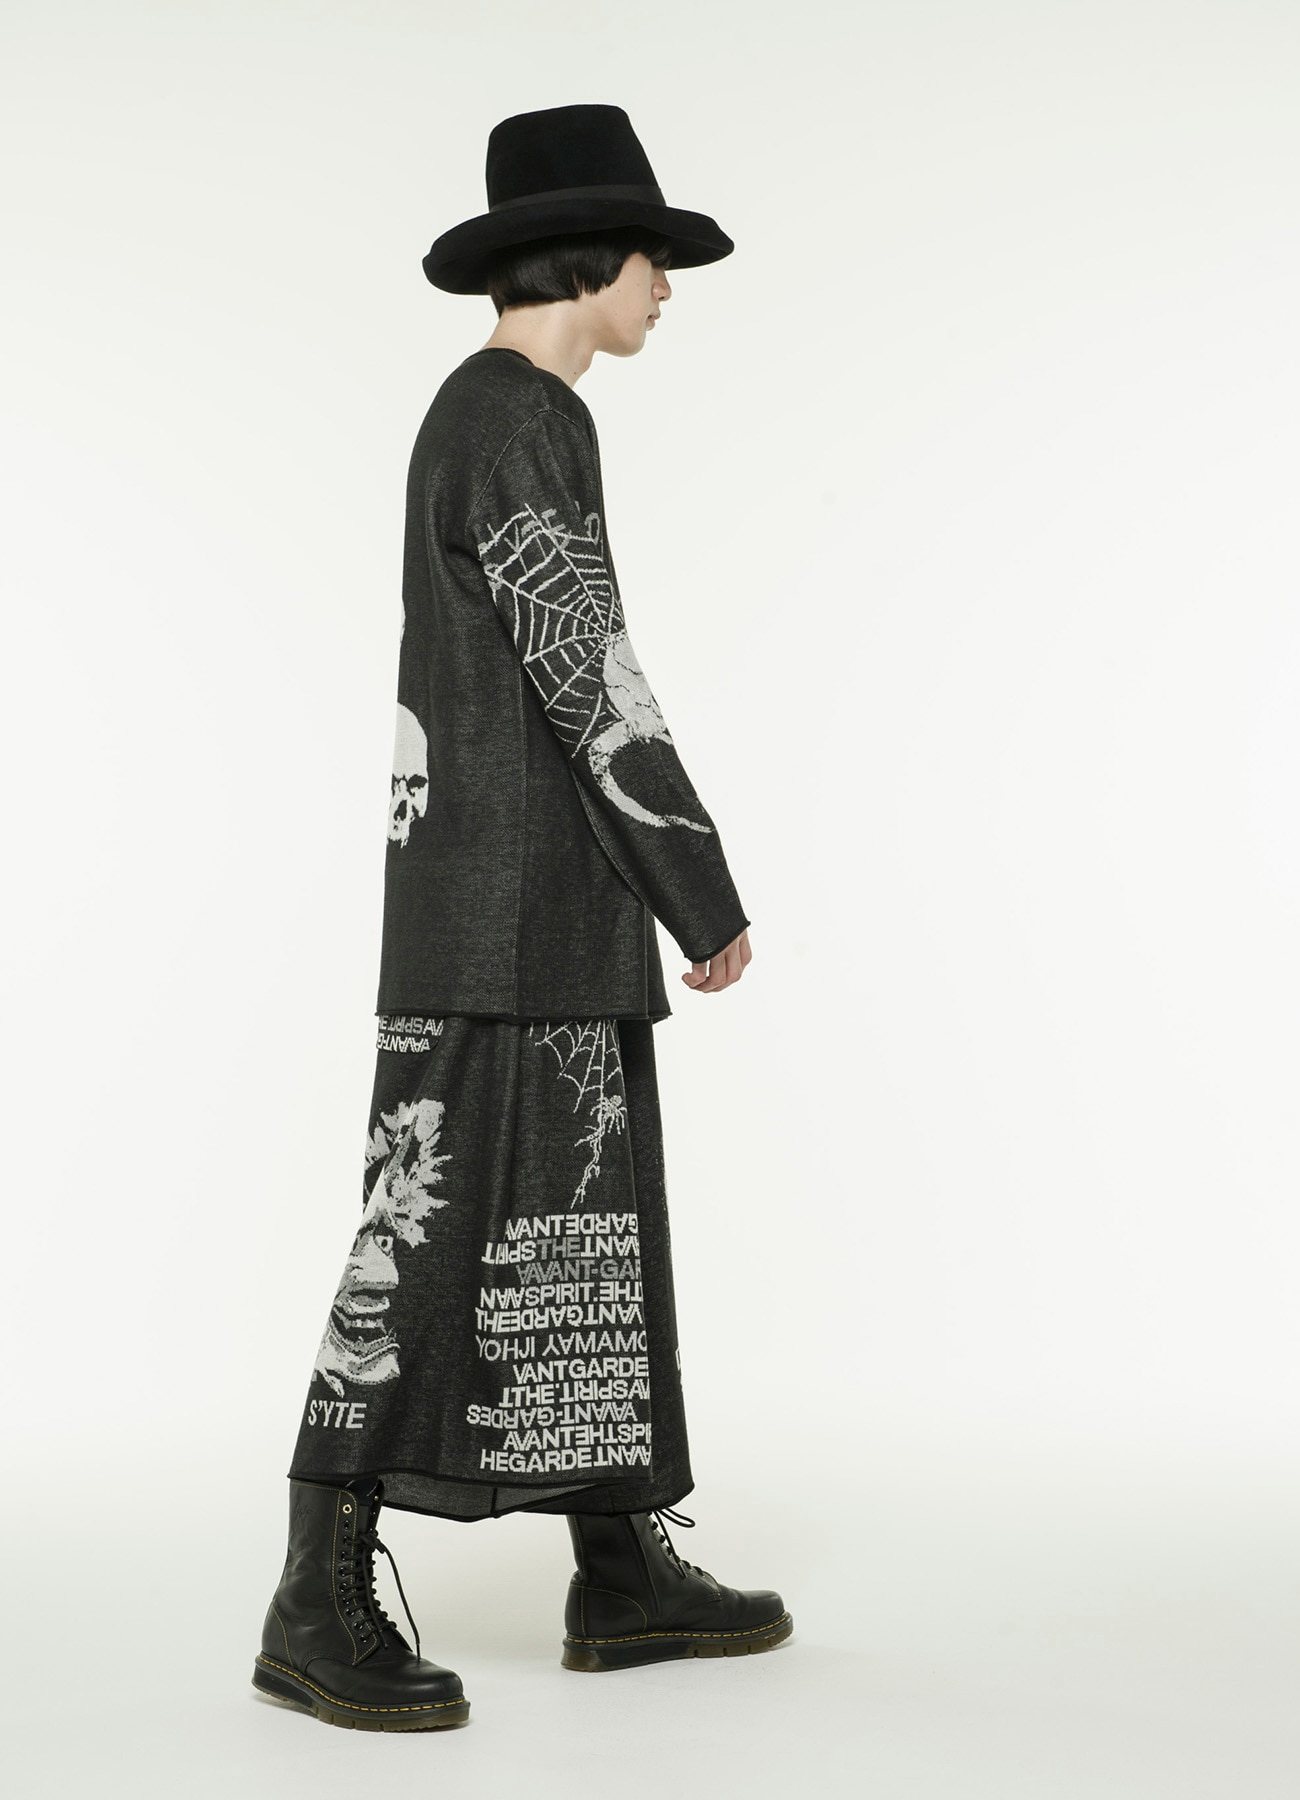 Hameauze Jacquard Knit Graphic Total Feature Culottes Pants